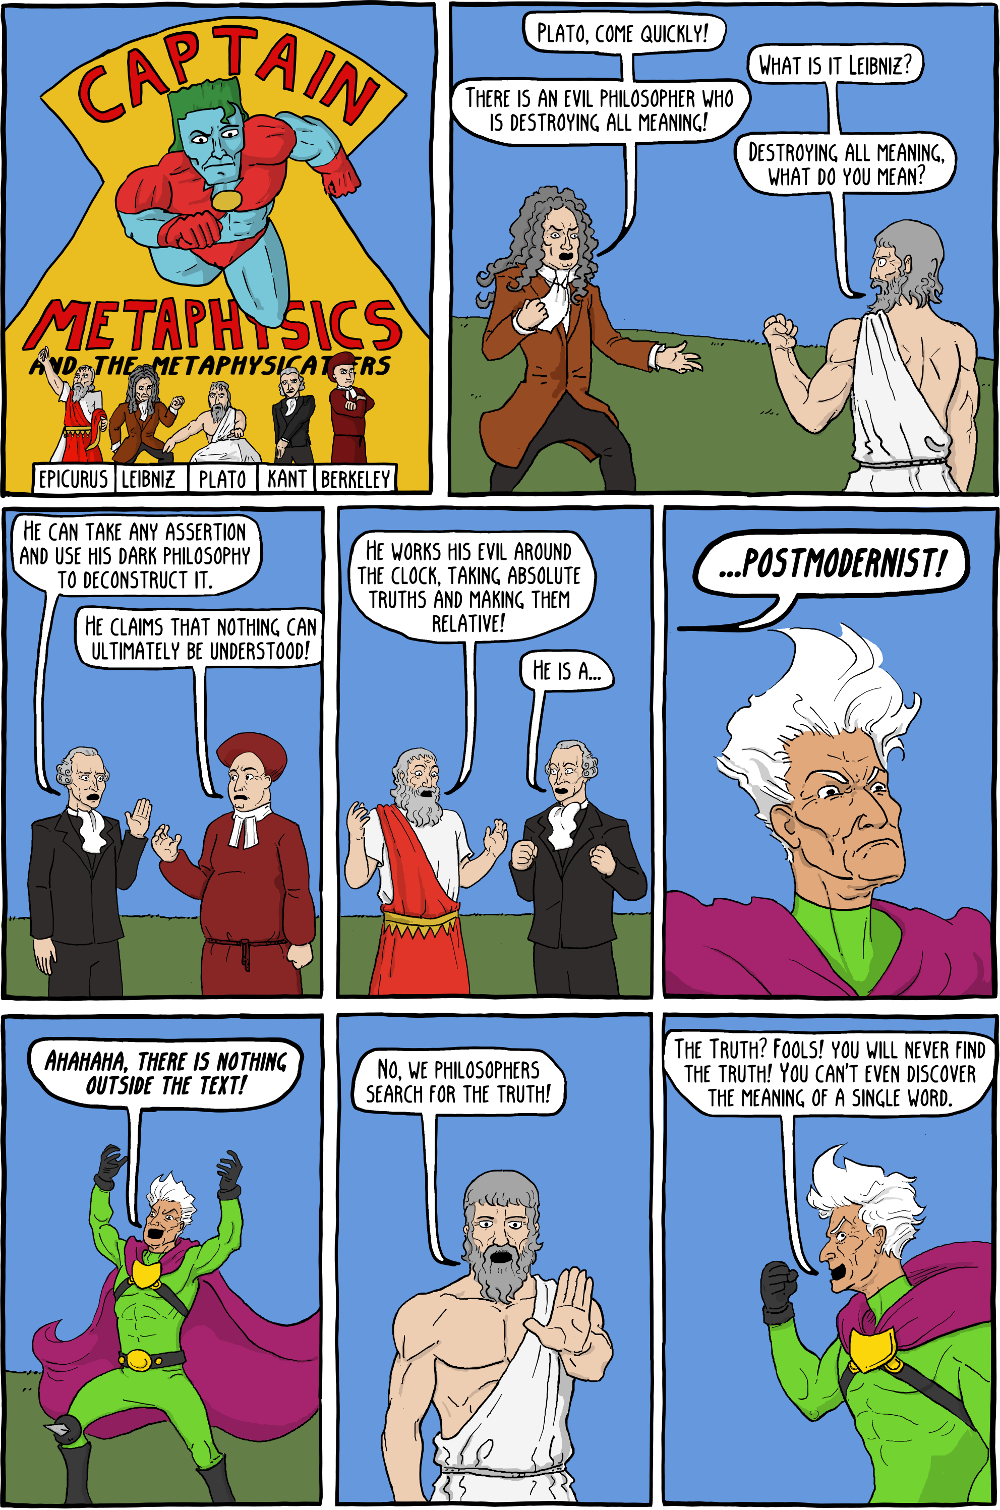 Captain Metaphysics and the Postmodern Peril - Existential ...